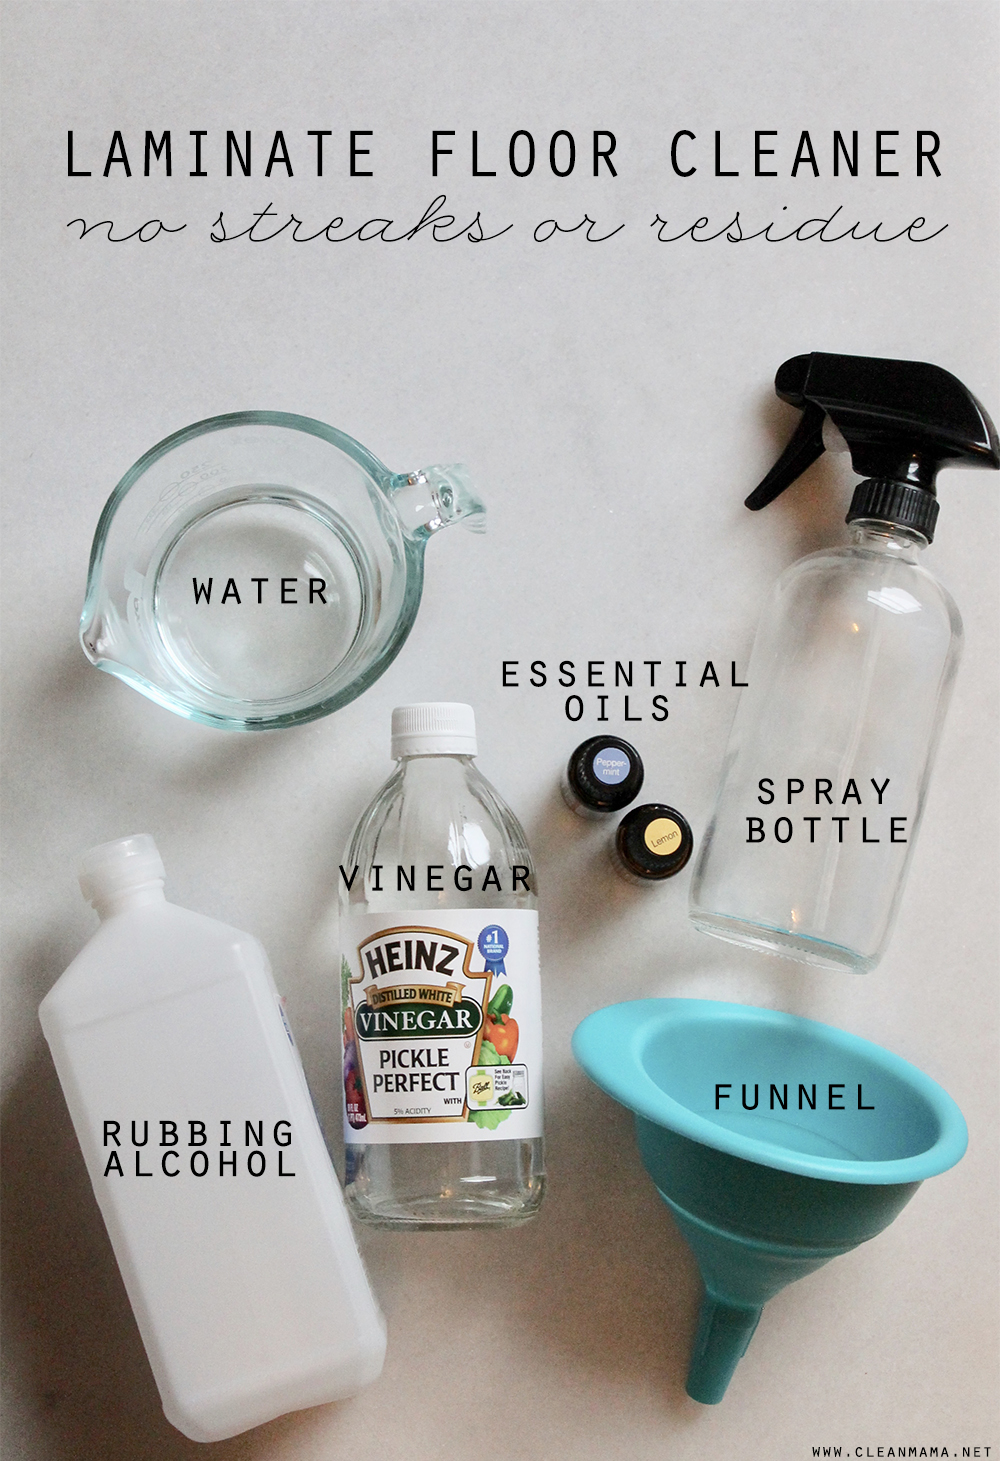 Diy Laminate Floor Cleaner Clean Mama